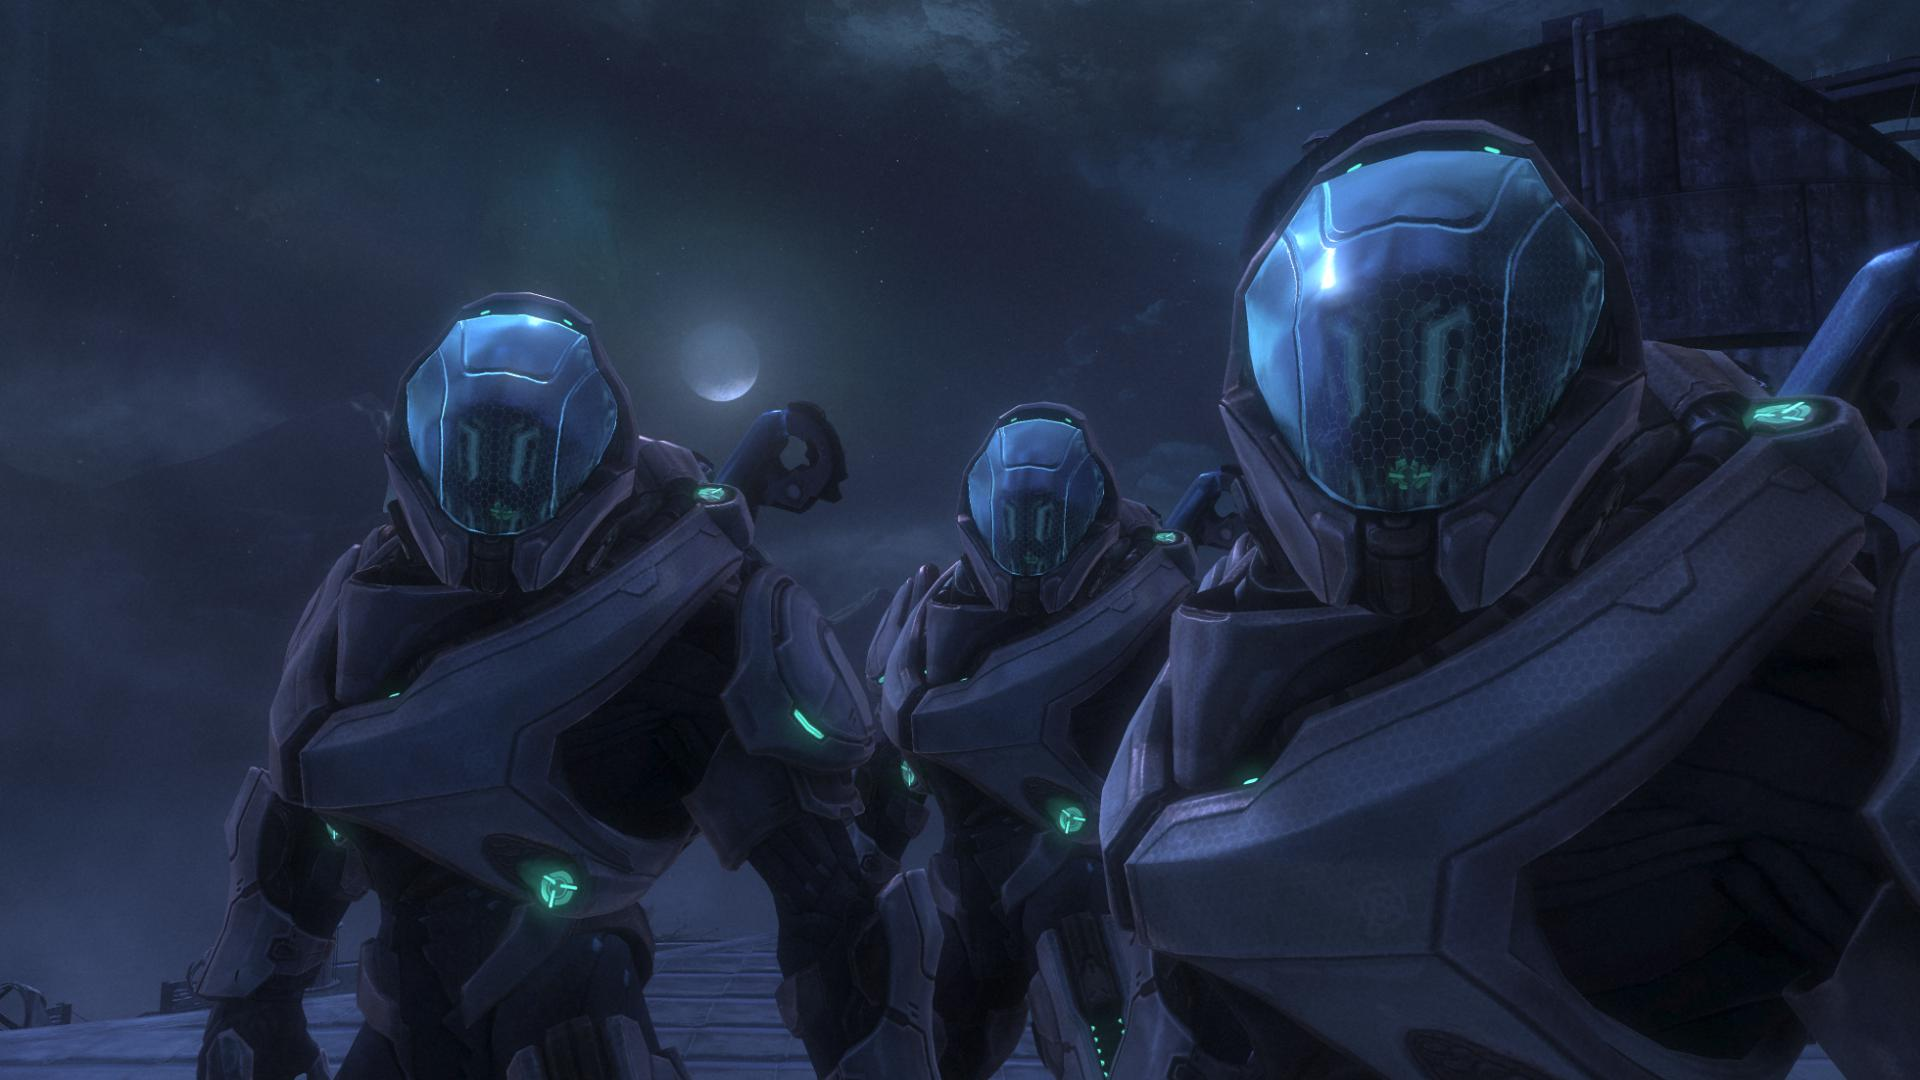 Halo Elite Wallpaper Images Pictures   Becuo 1920x1080